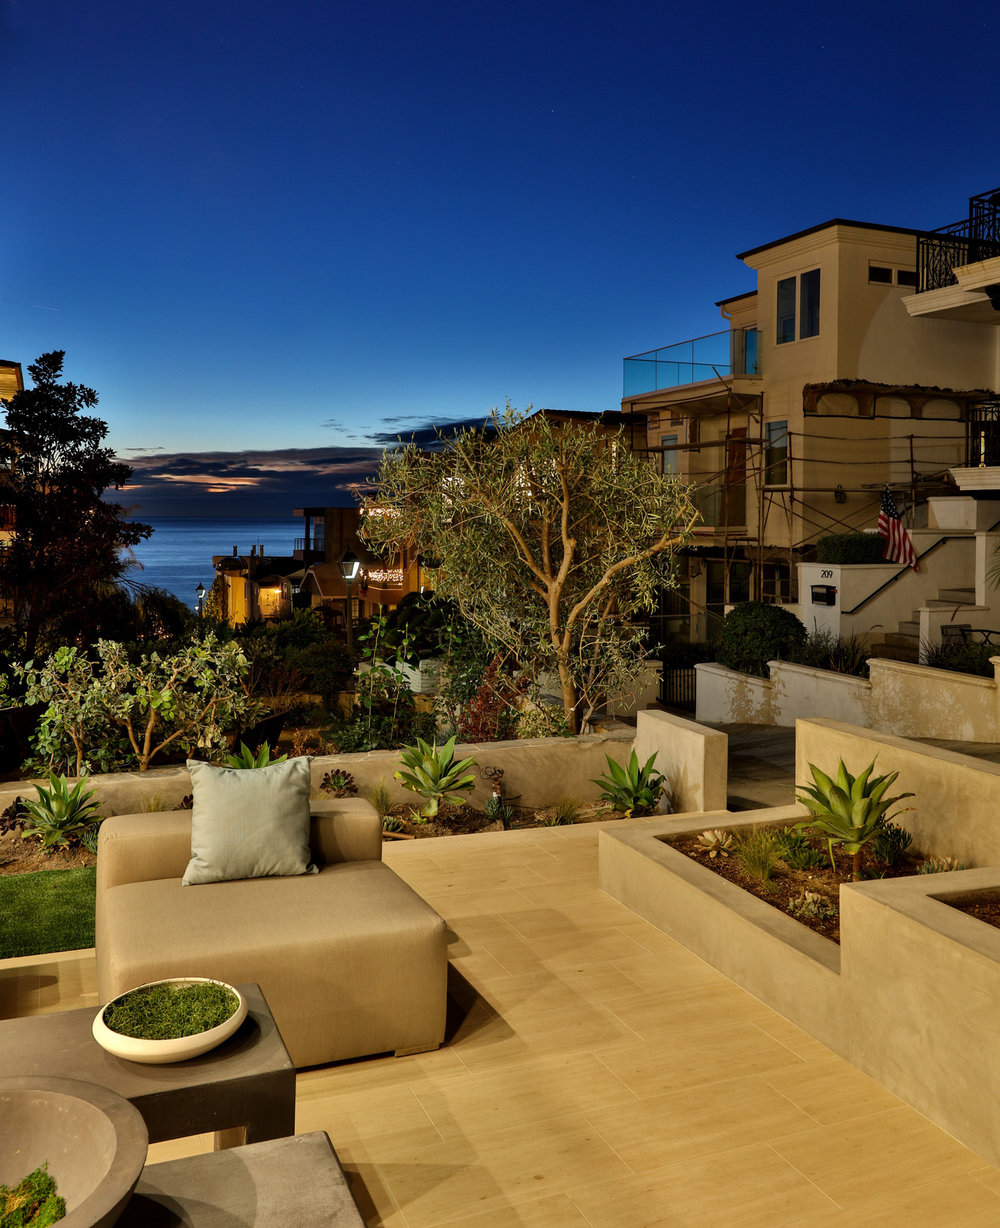 ocean-view-patio-silicon-bay.jpg